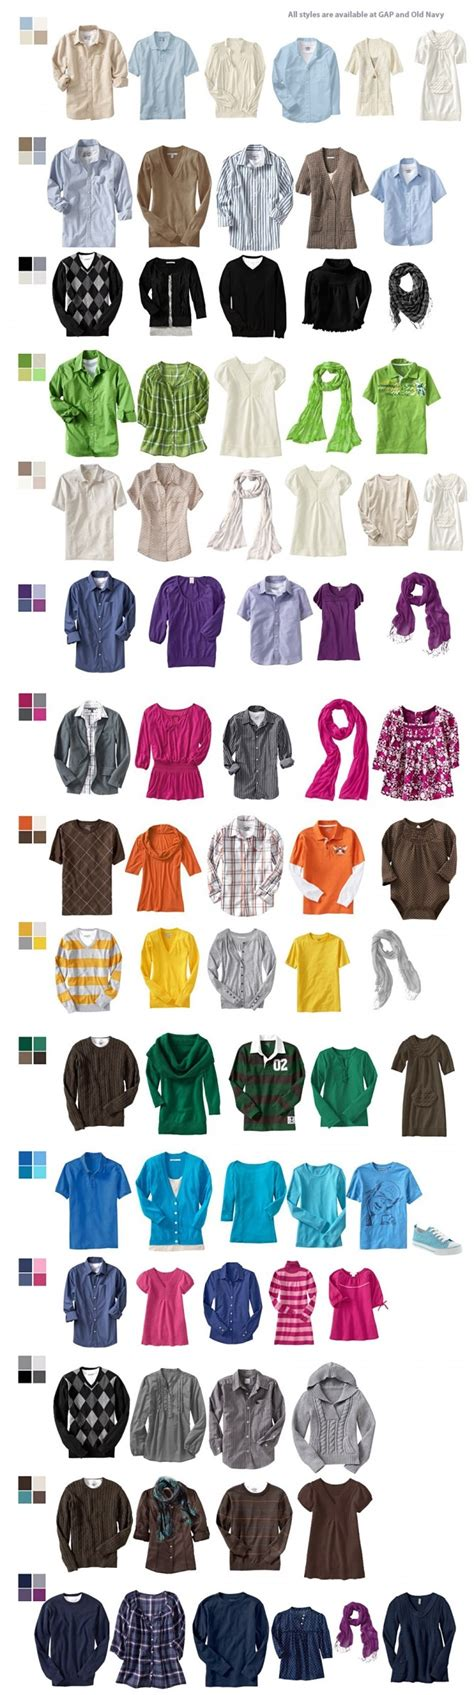 best color to wear for what to wear for family photos clothing ideas